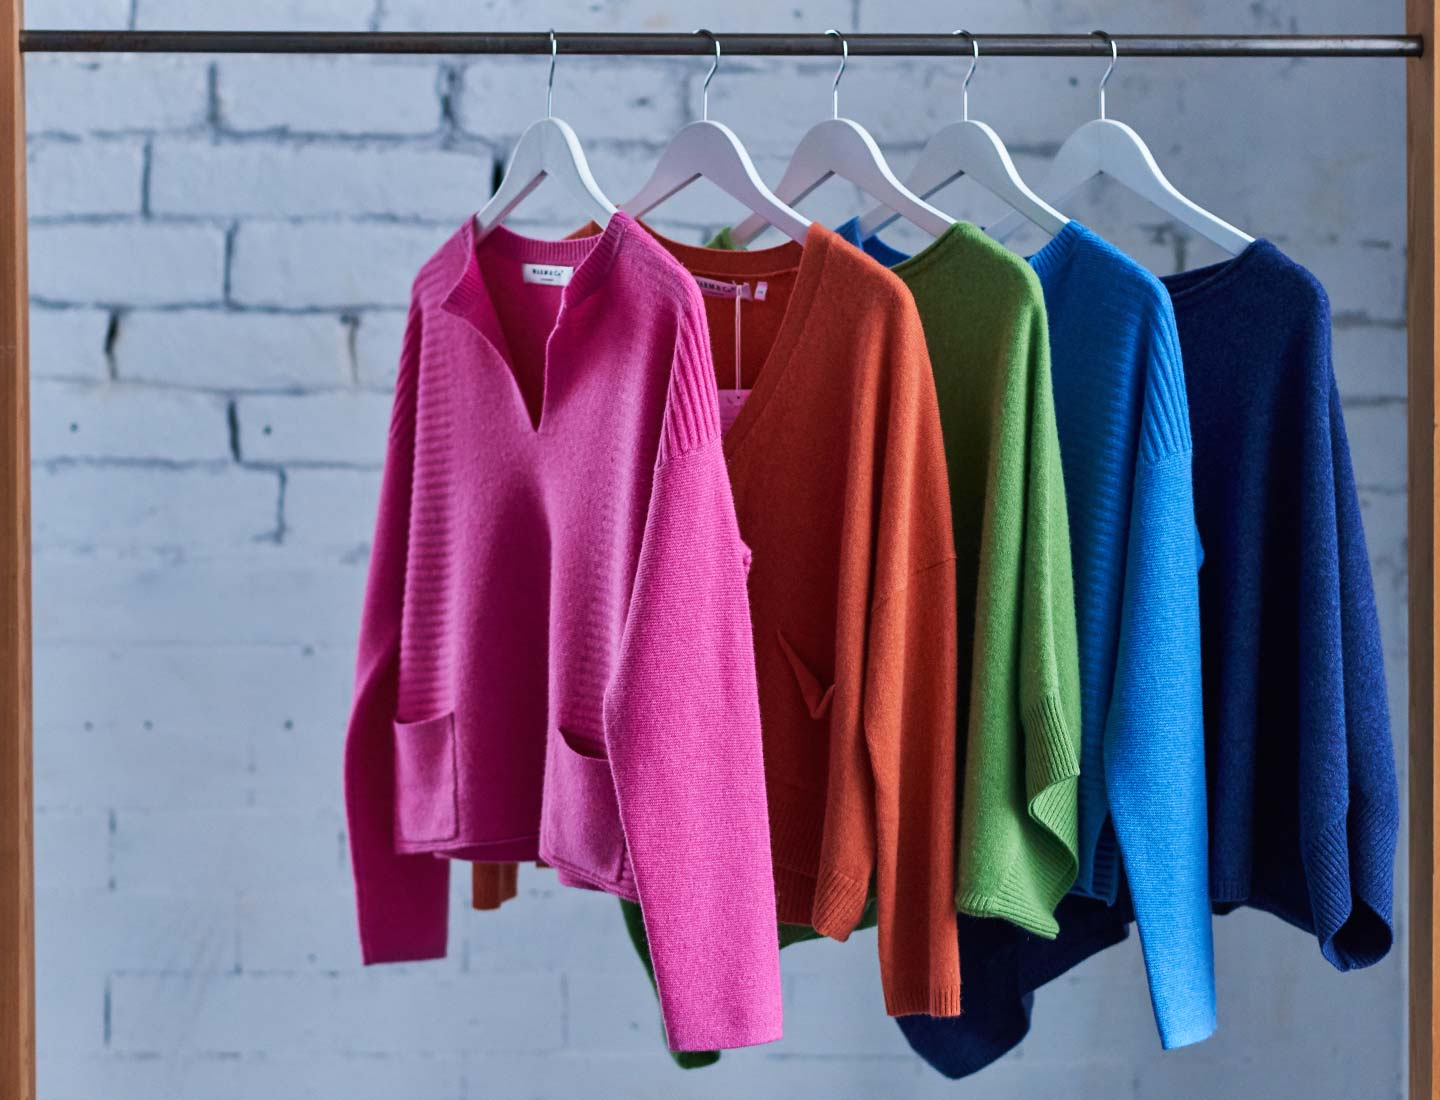 cashmere-jumpers-on-a-wooden-rail-in-a-warehouse